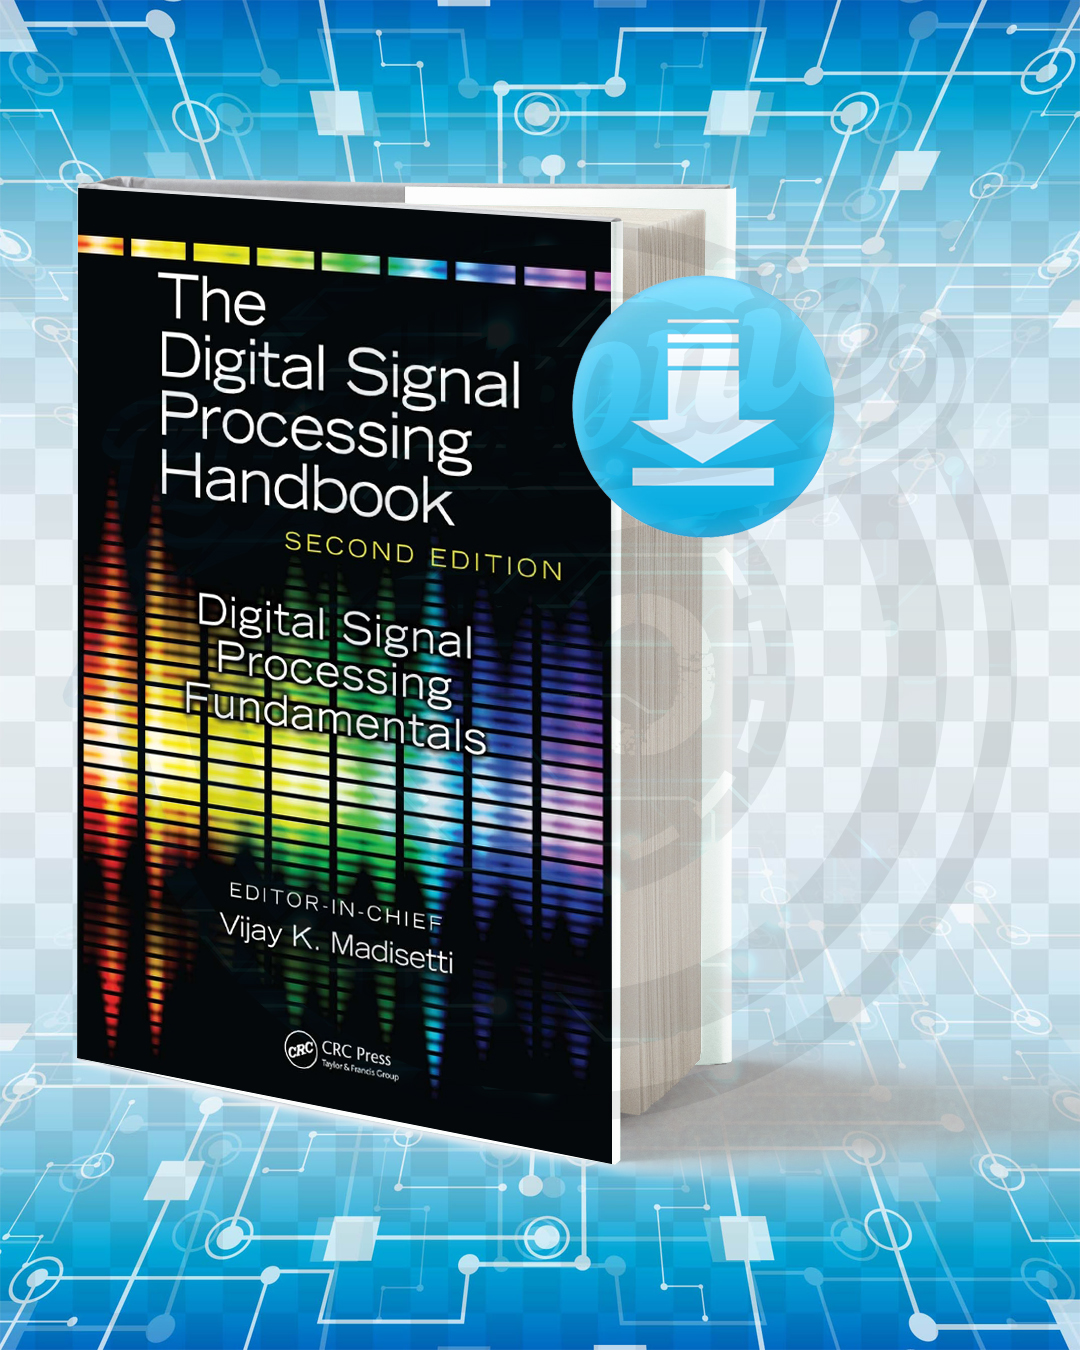 Free Book The Digital Signal Processing Handbook pdf.